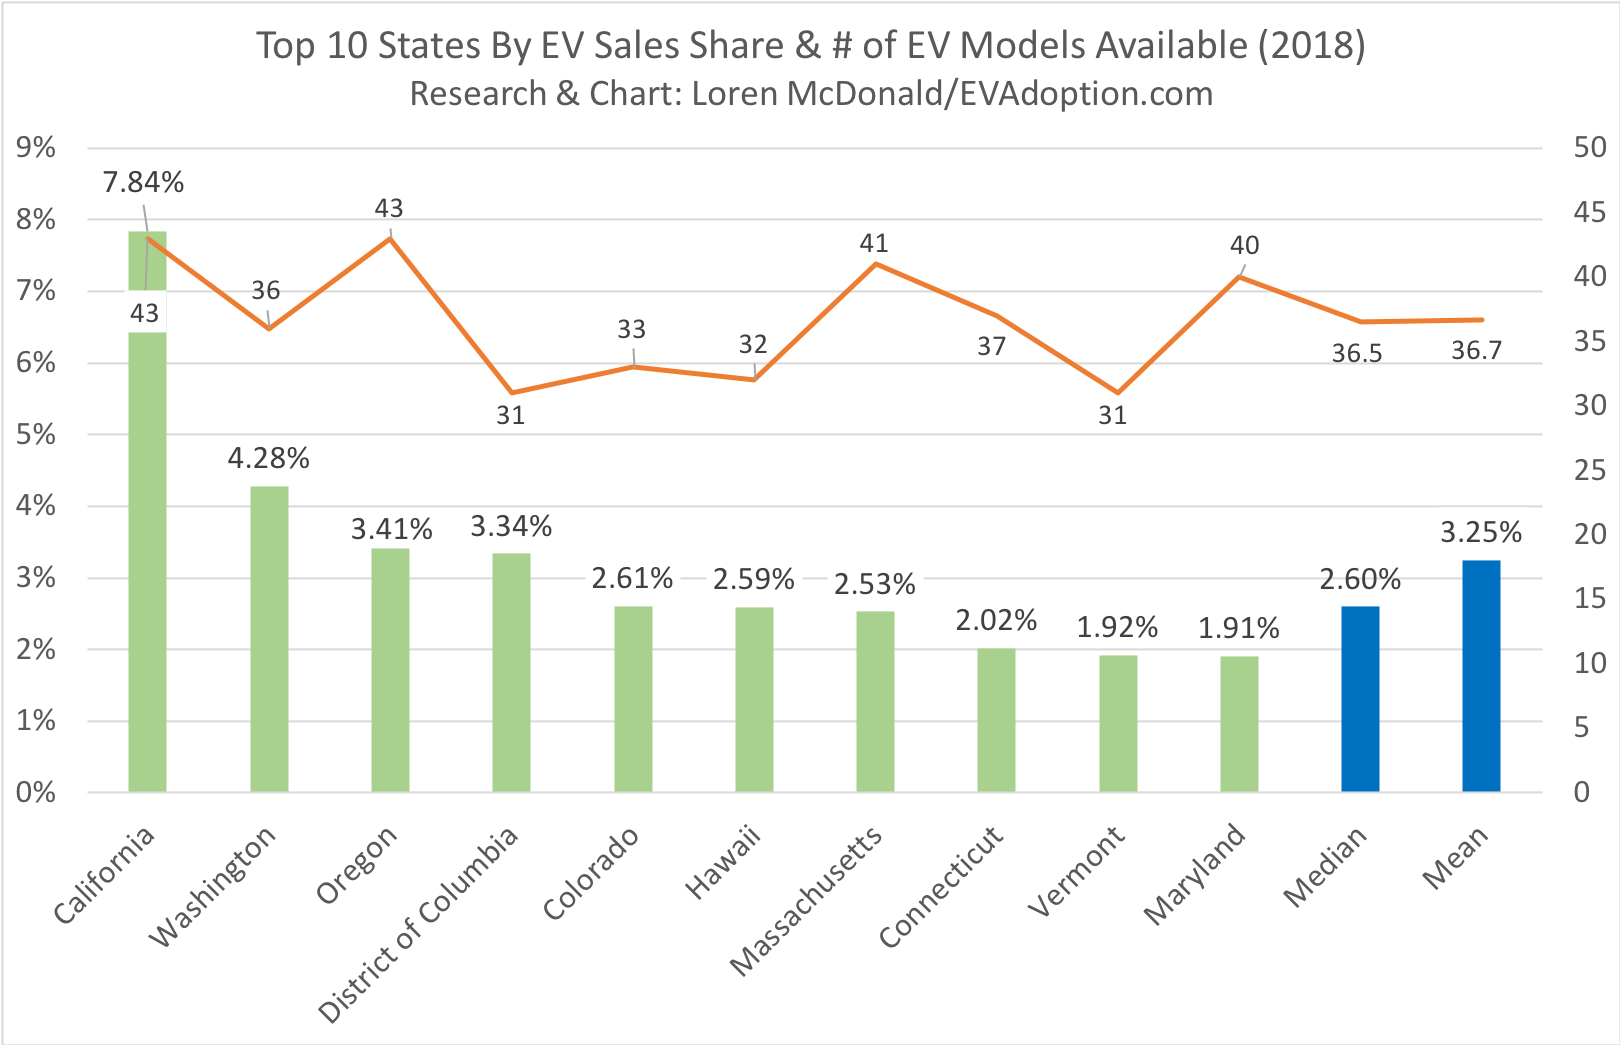 States With Greater Availability of EV Models Average 10 Times Higher Share of Sales